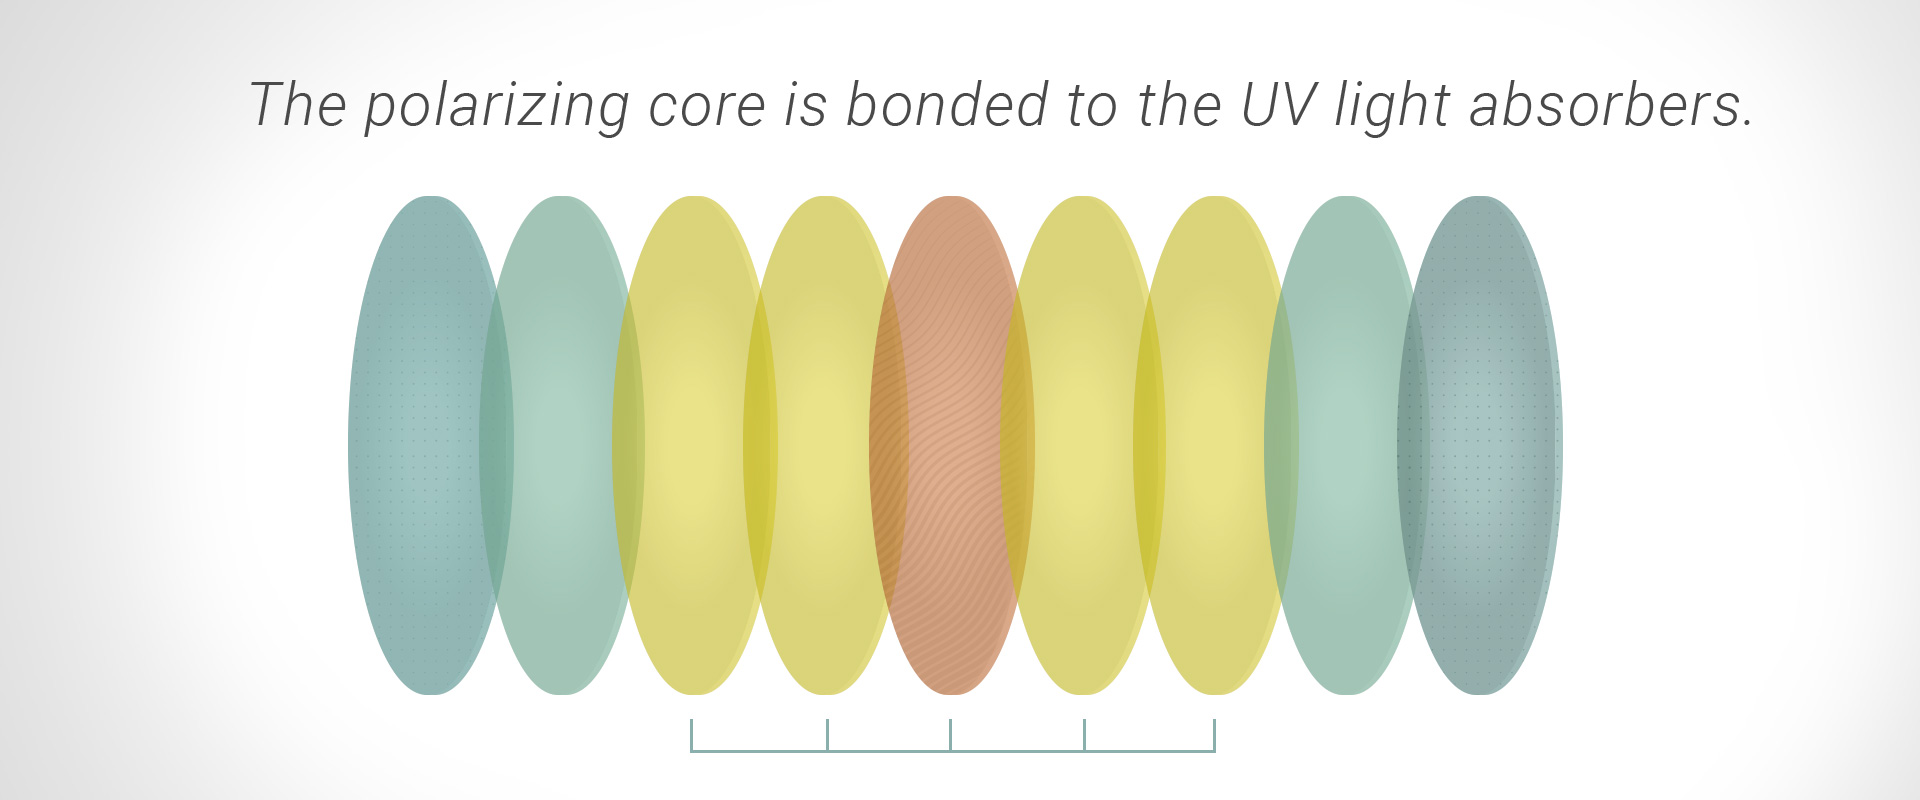 The polarizing core is bonded to the UV light absorbers